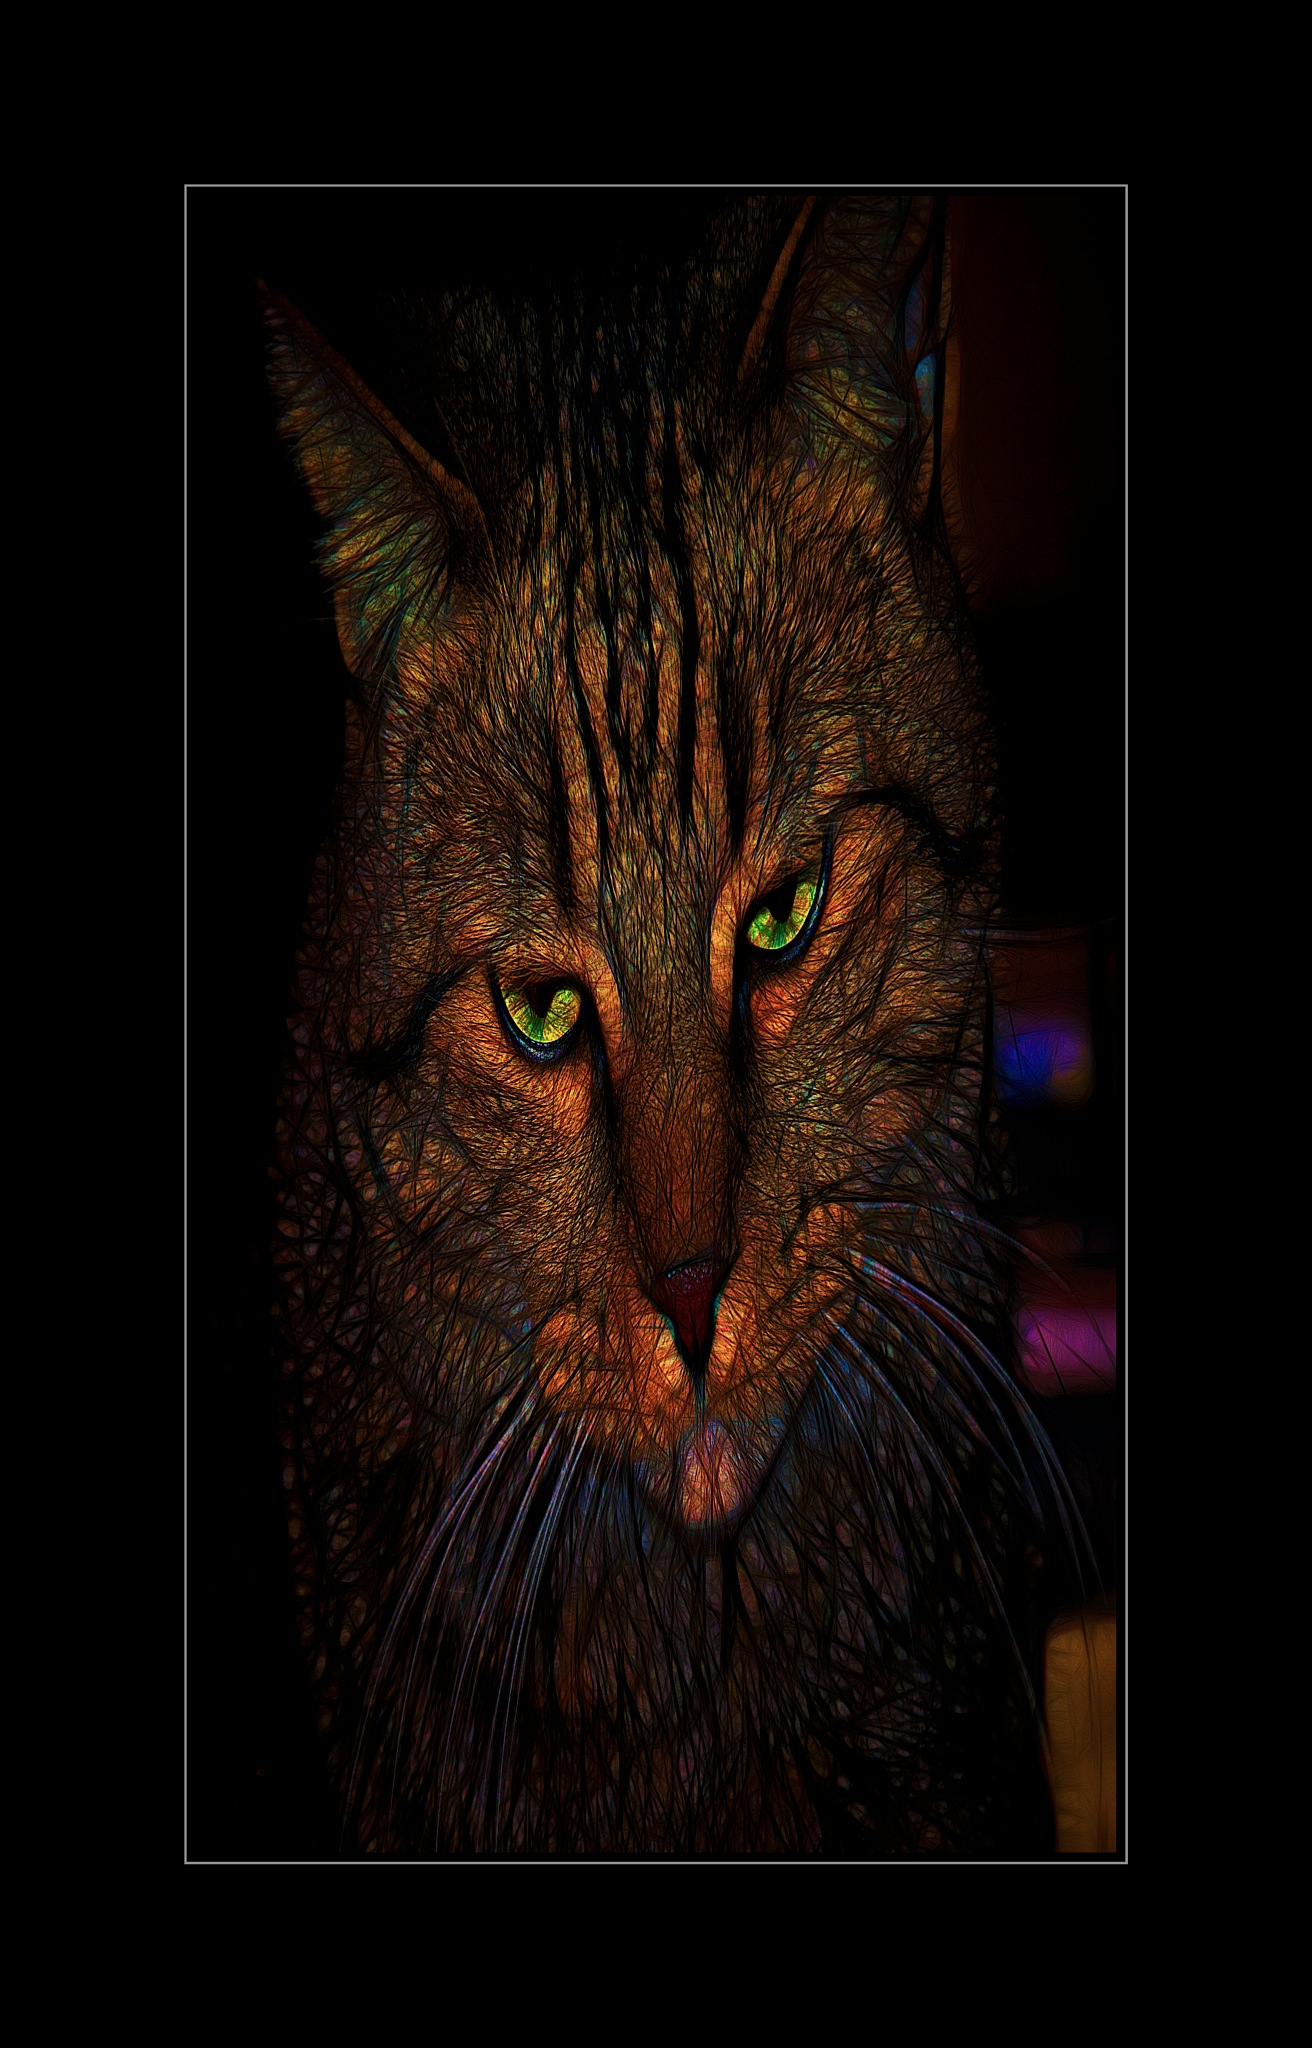 Catface 1 by JohnEllingson